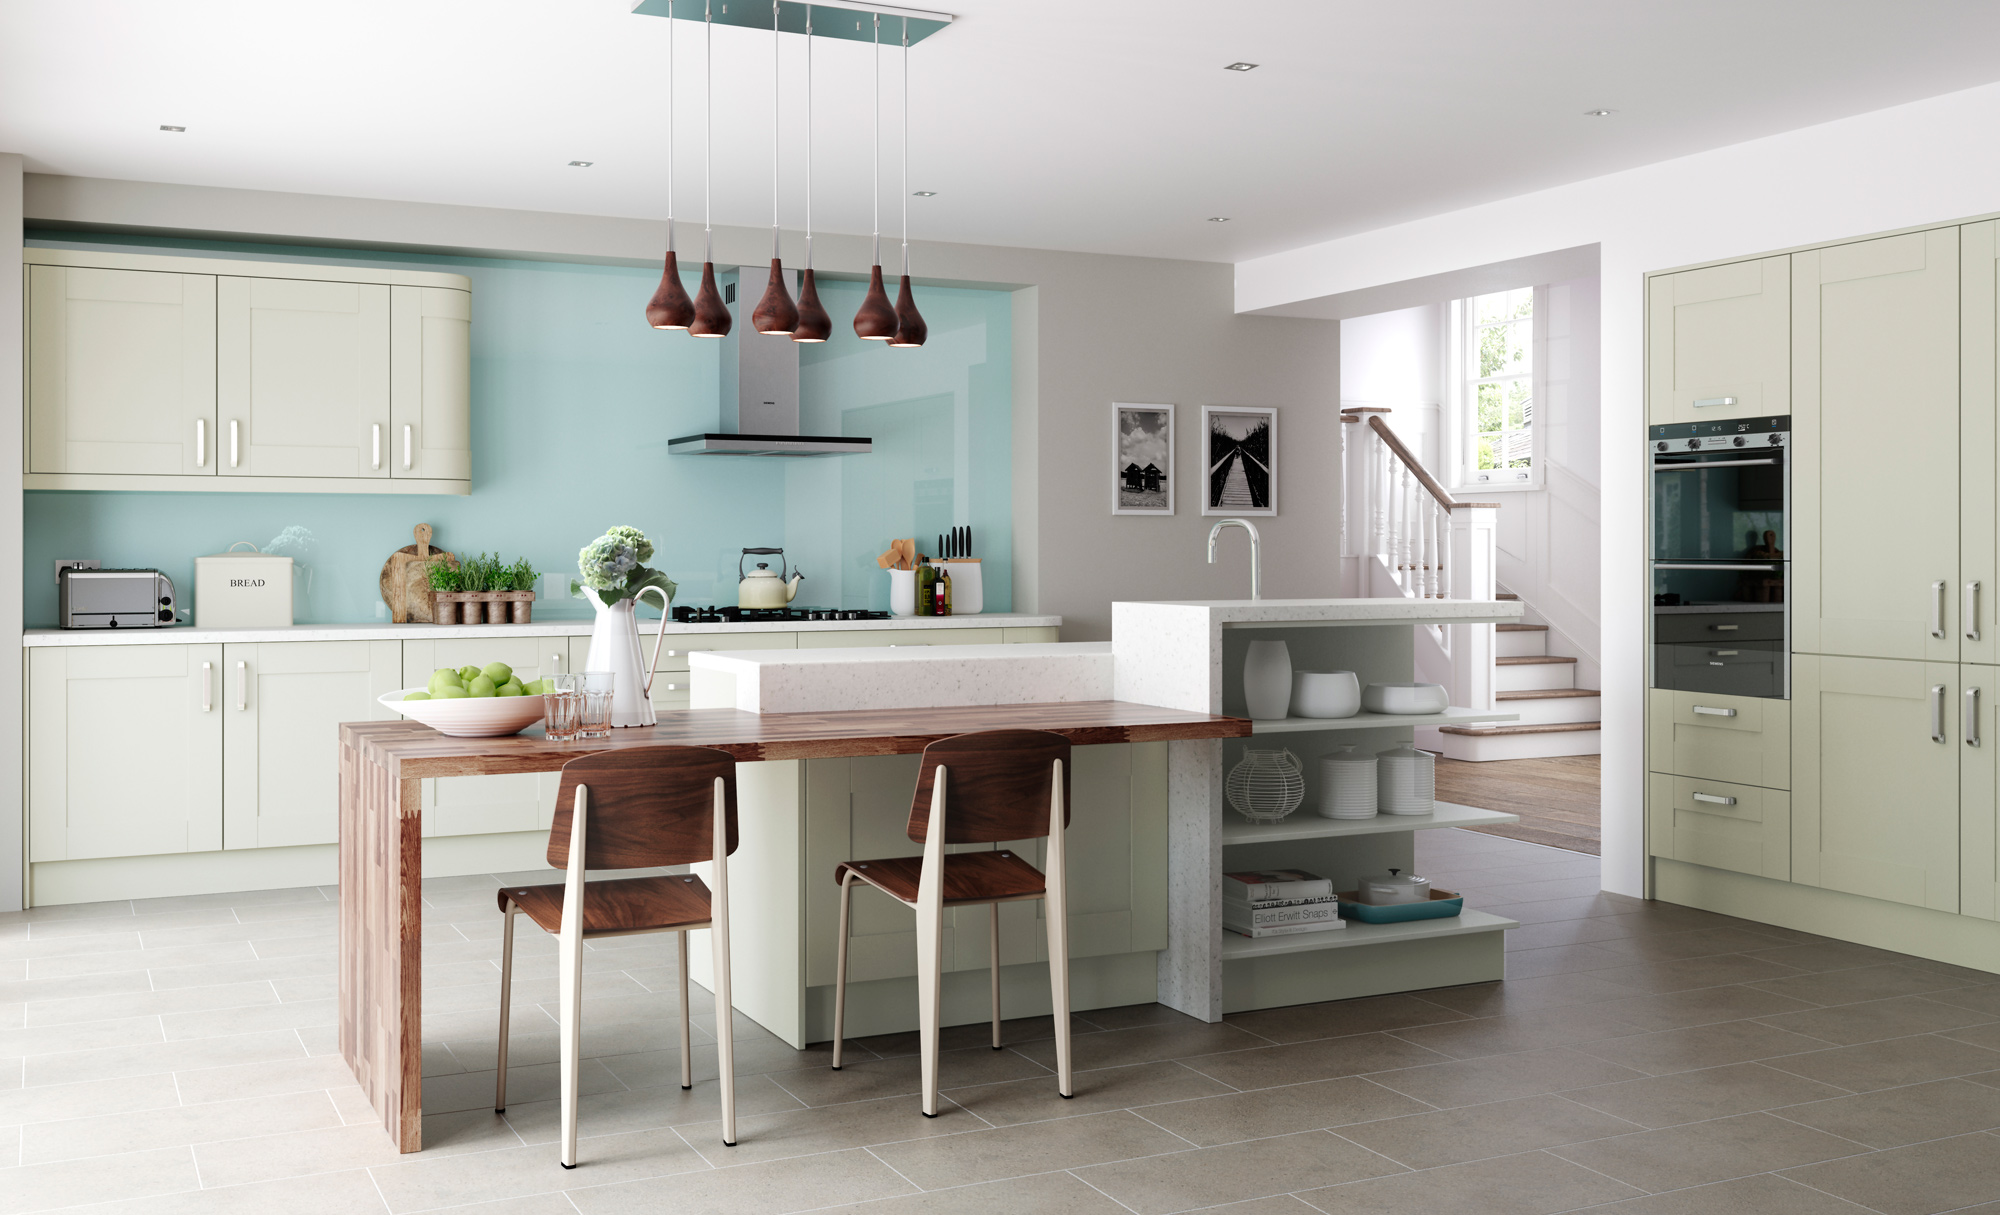 Perfekt Modern Contemporary Windsor Shaker Kitchen In Painted Mussel ...